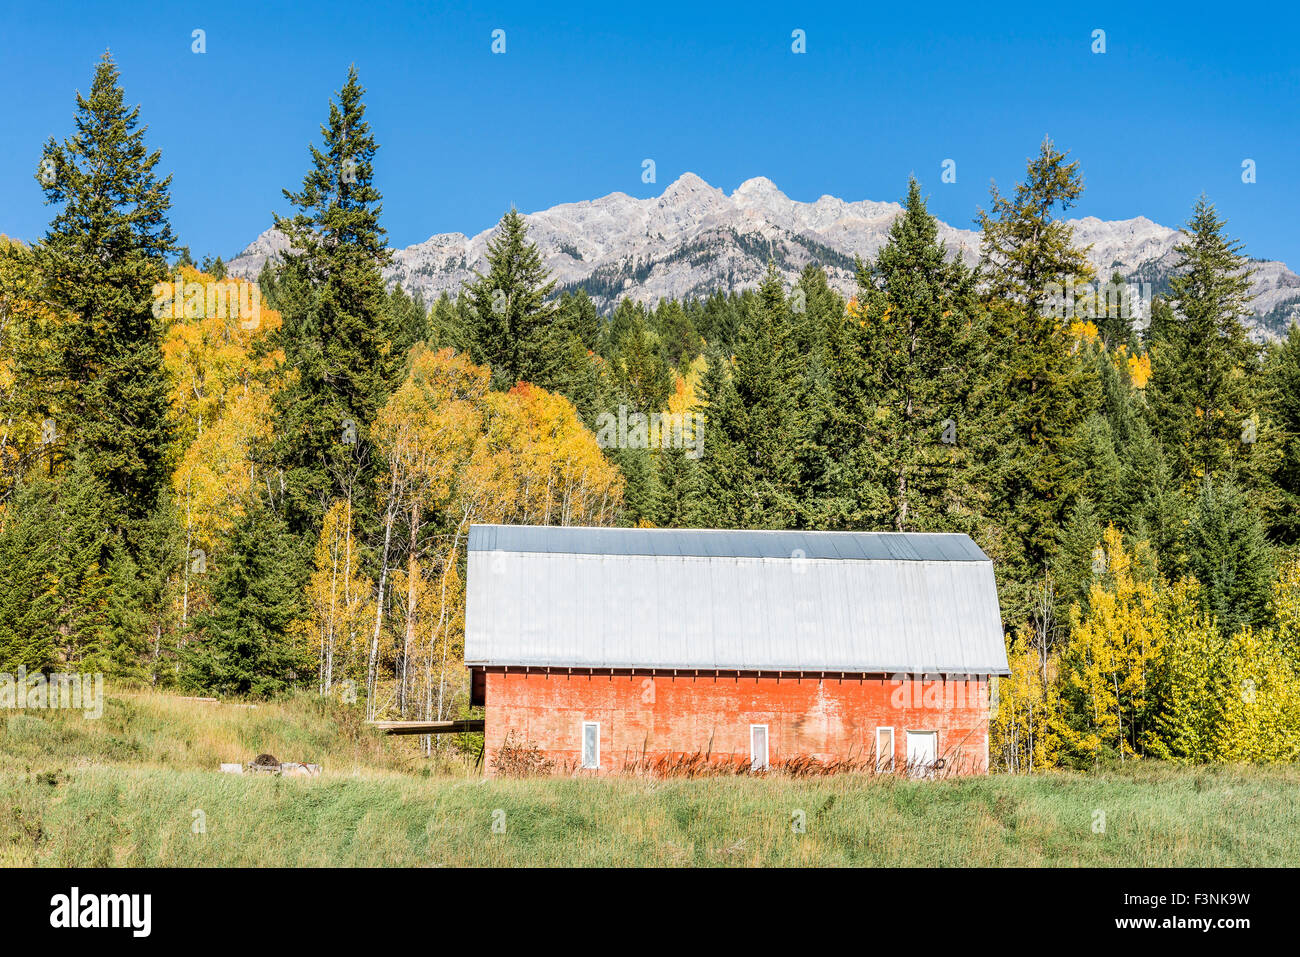 Red barn, Columbia Valley, British Columbia, Canada - Stock Image